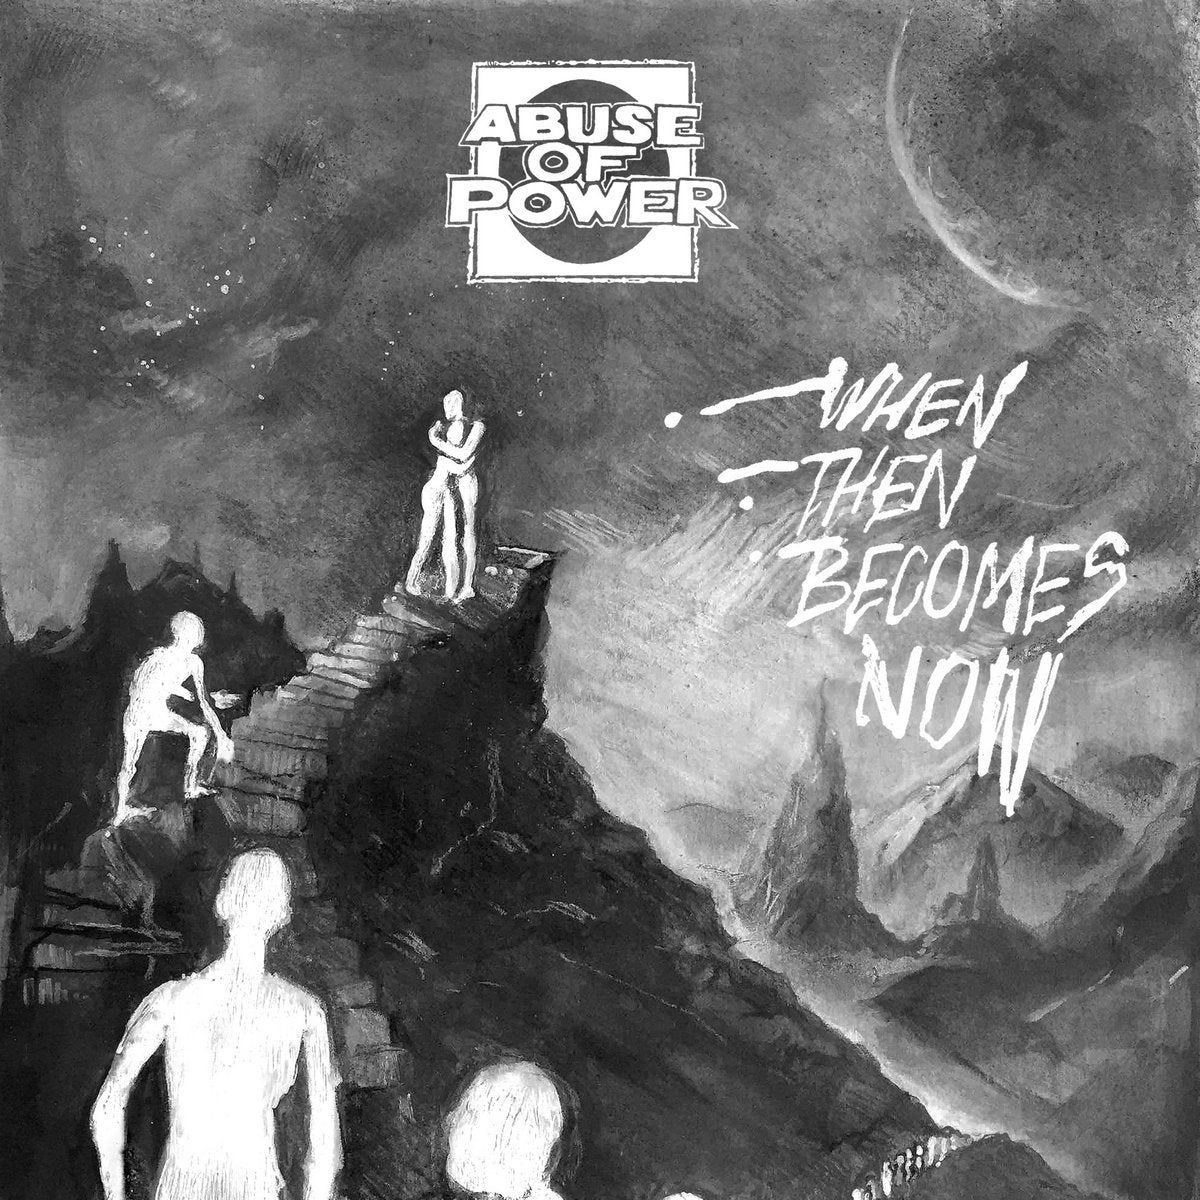 ABUSE OF POWER 'When Then Becomes Now' 7""